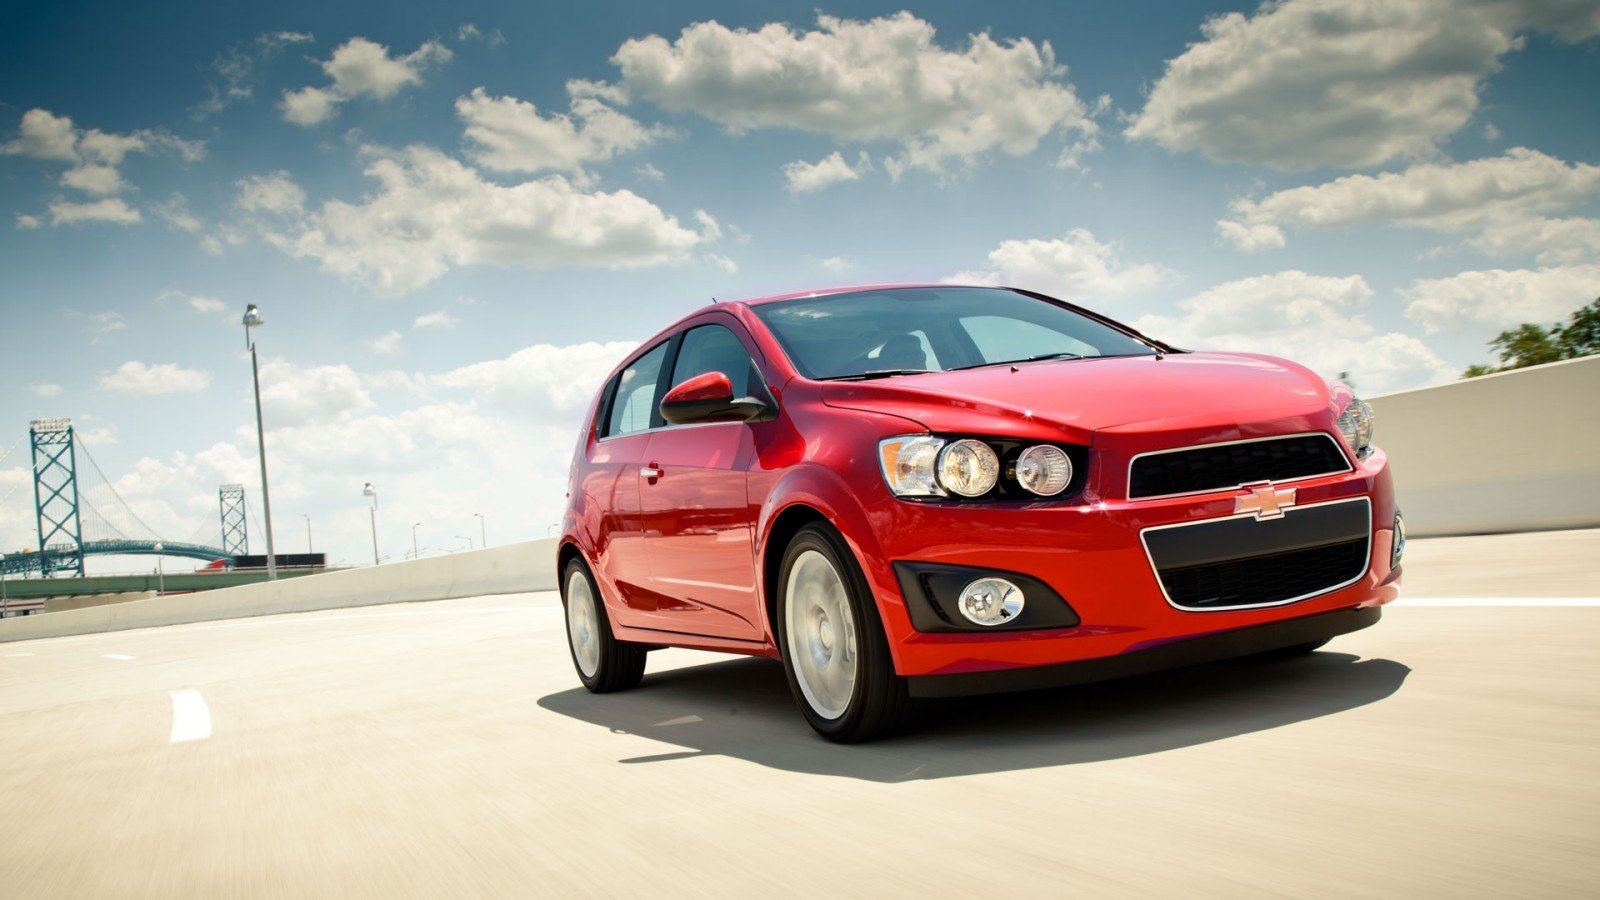 Chevrolet Sonic Repair Manual: Battery Replacement